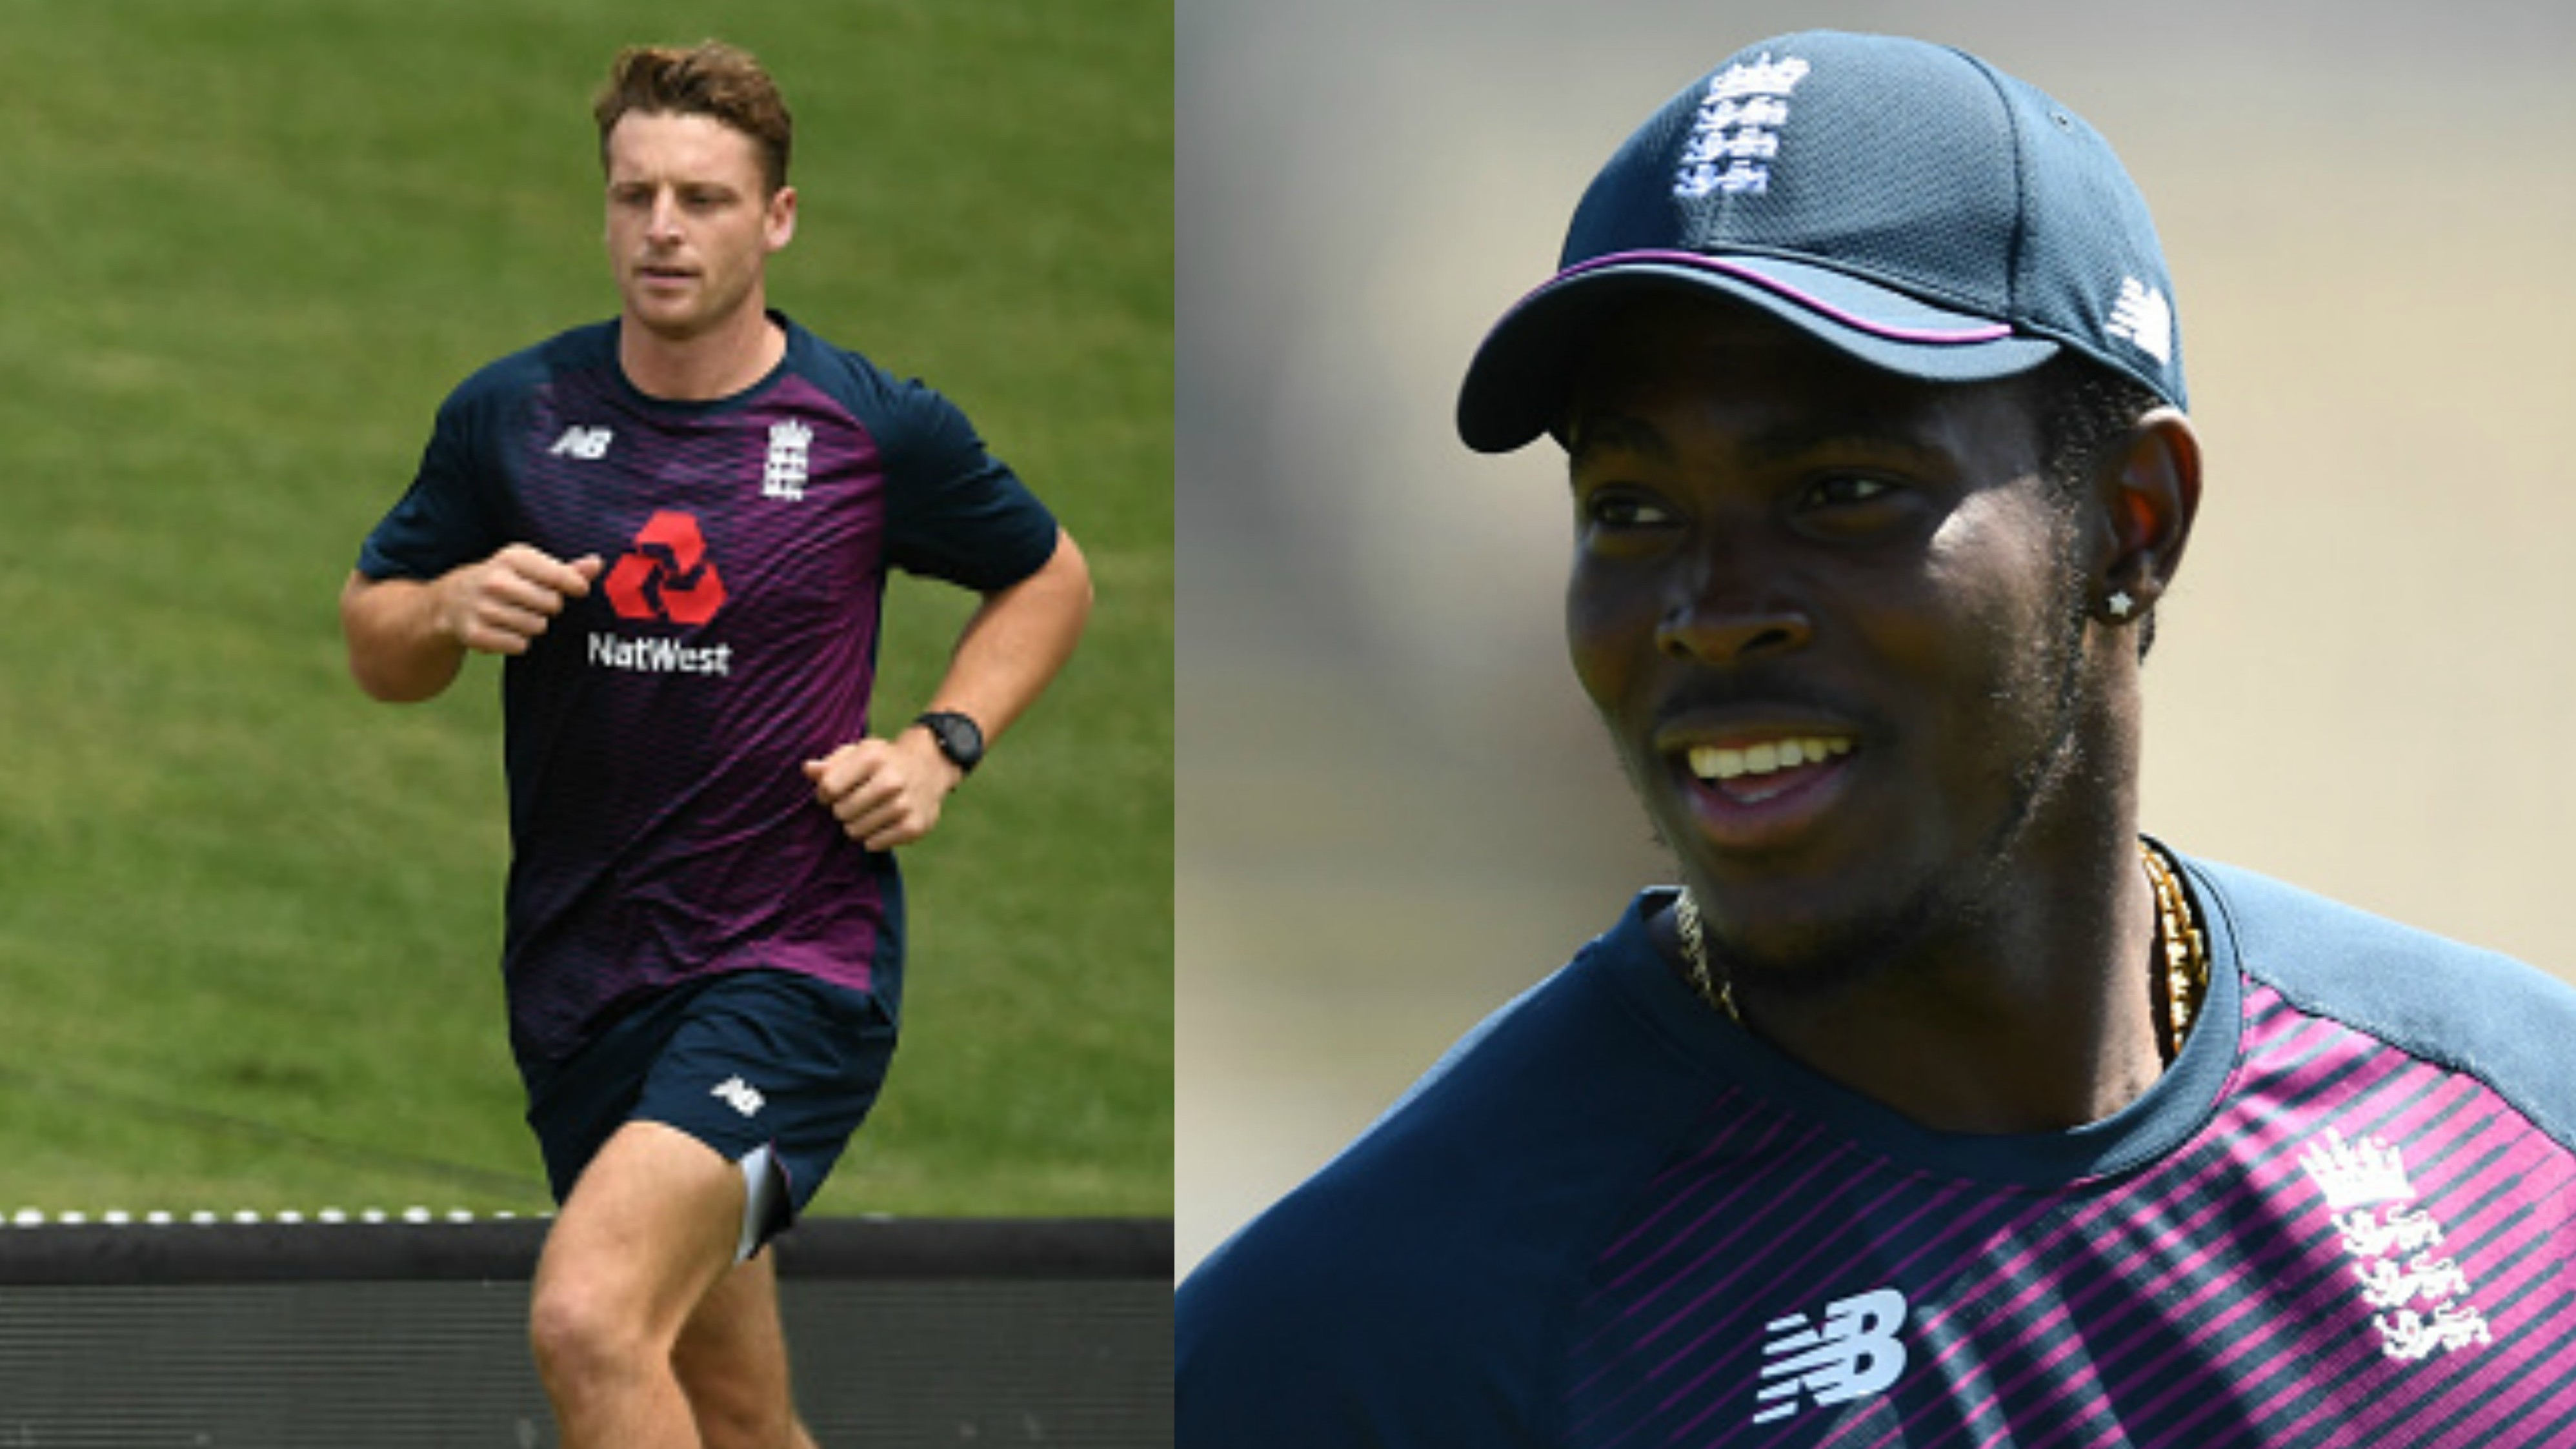 NZ v ENG 2019: Jofra Archer 'fine' but Jos Buttler in doubt for Hamilton Test, says Root